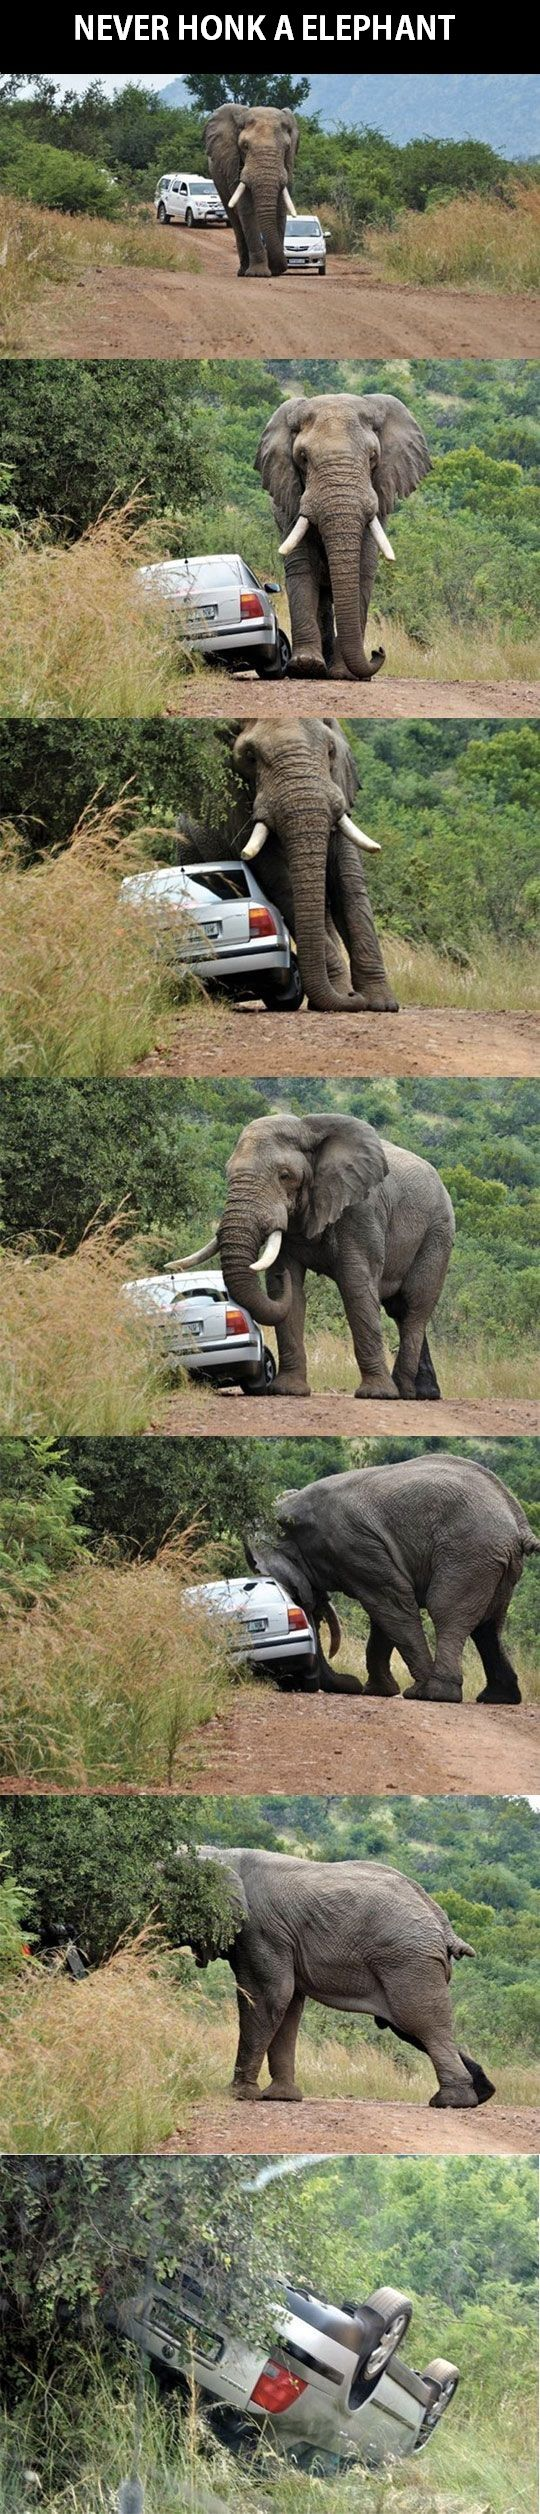 Images of the day, 90 images. Never Honk A Elephant